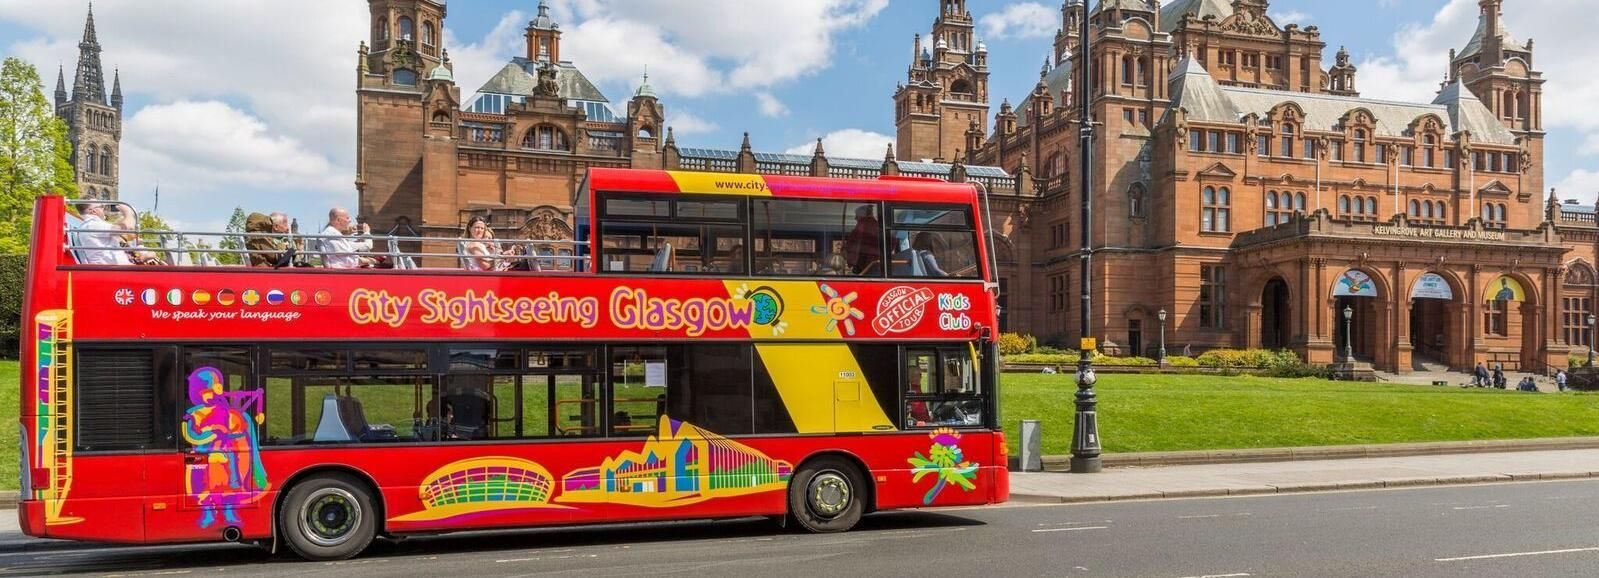 City Sightseeing Glasgow: Hop-On Hop-Off Bus Tour